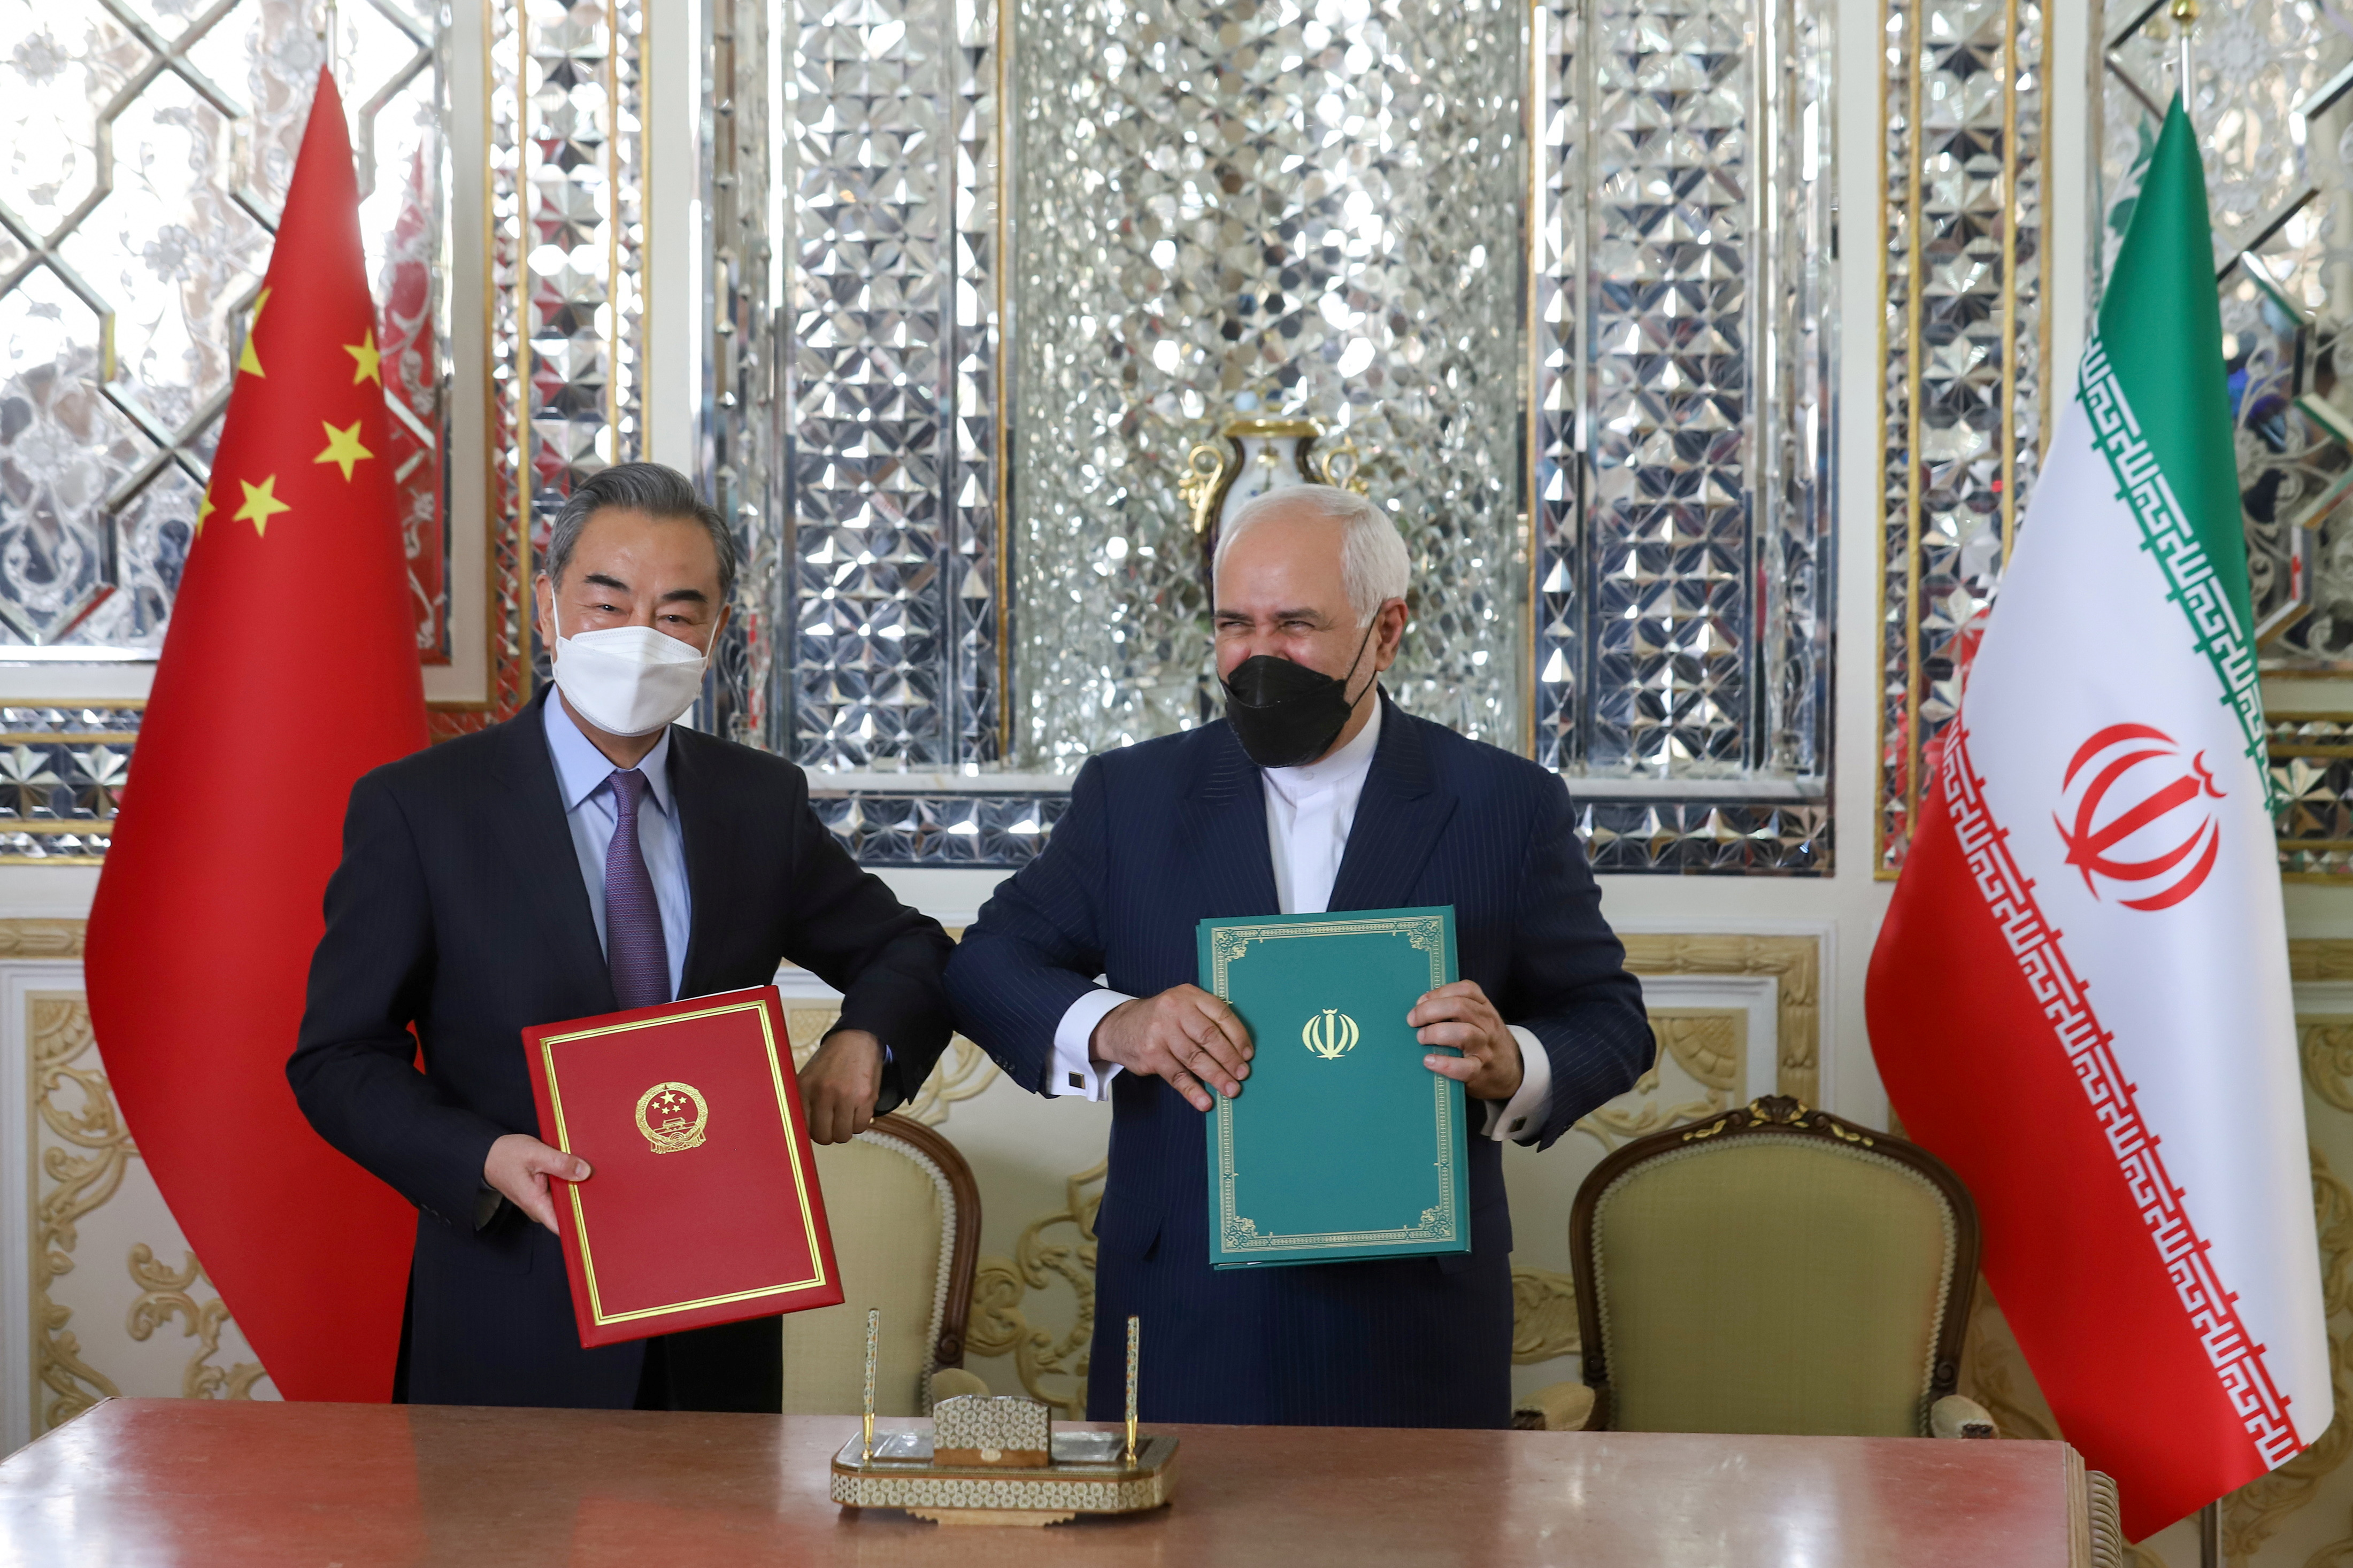 Iran's Foreign Minister Mohammad Javad Zarif and China's Foreign Minister Wang Yi bump elbows during the signing ceremony of a 25-year cooperation agreement, in Tehran, Iran March 27, 2021. Majid Asgaripour/WANA